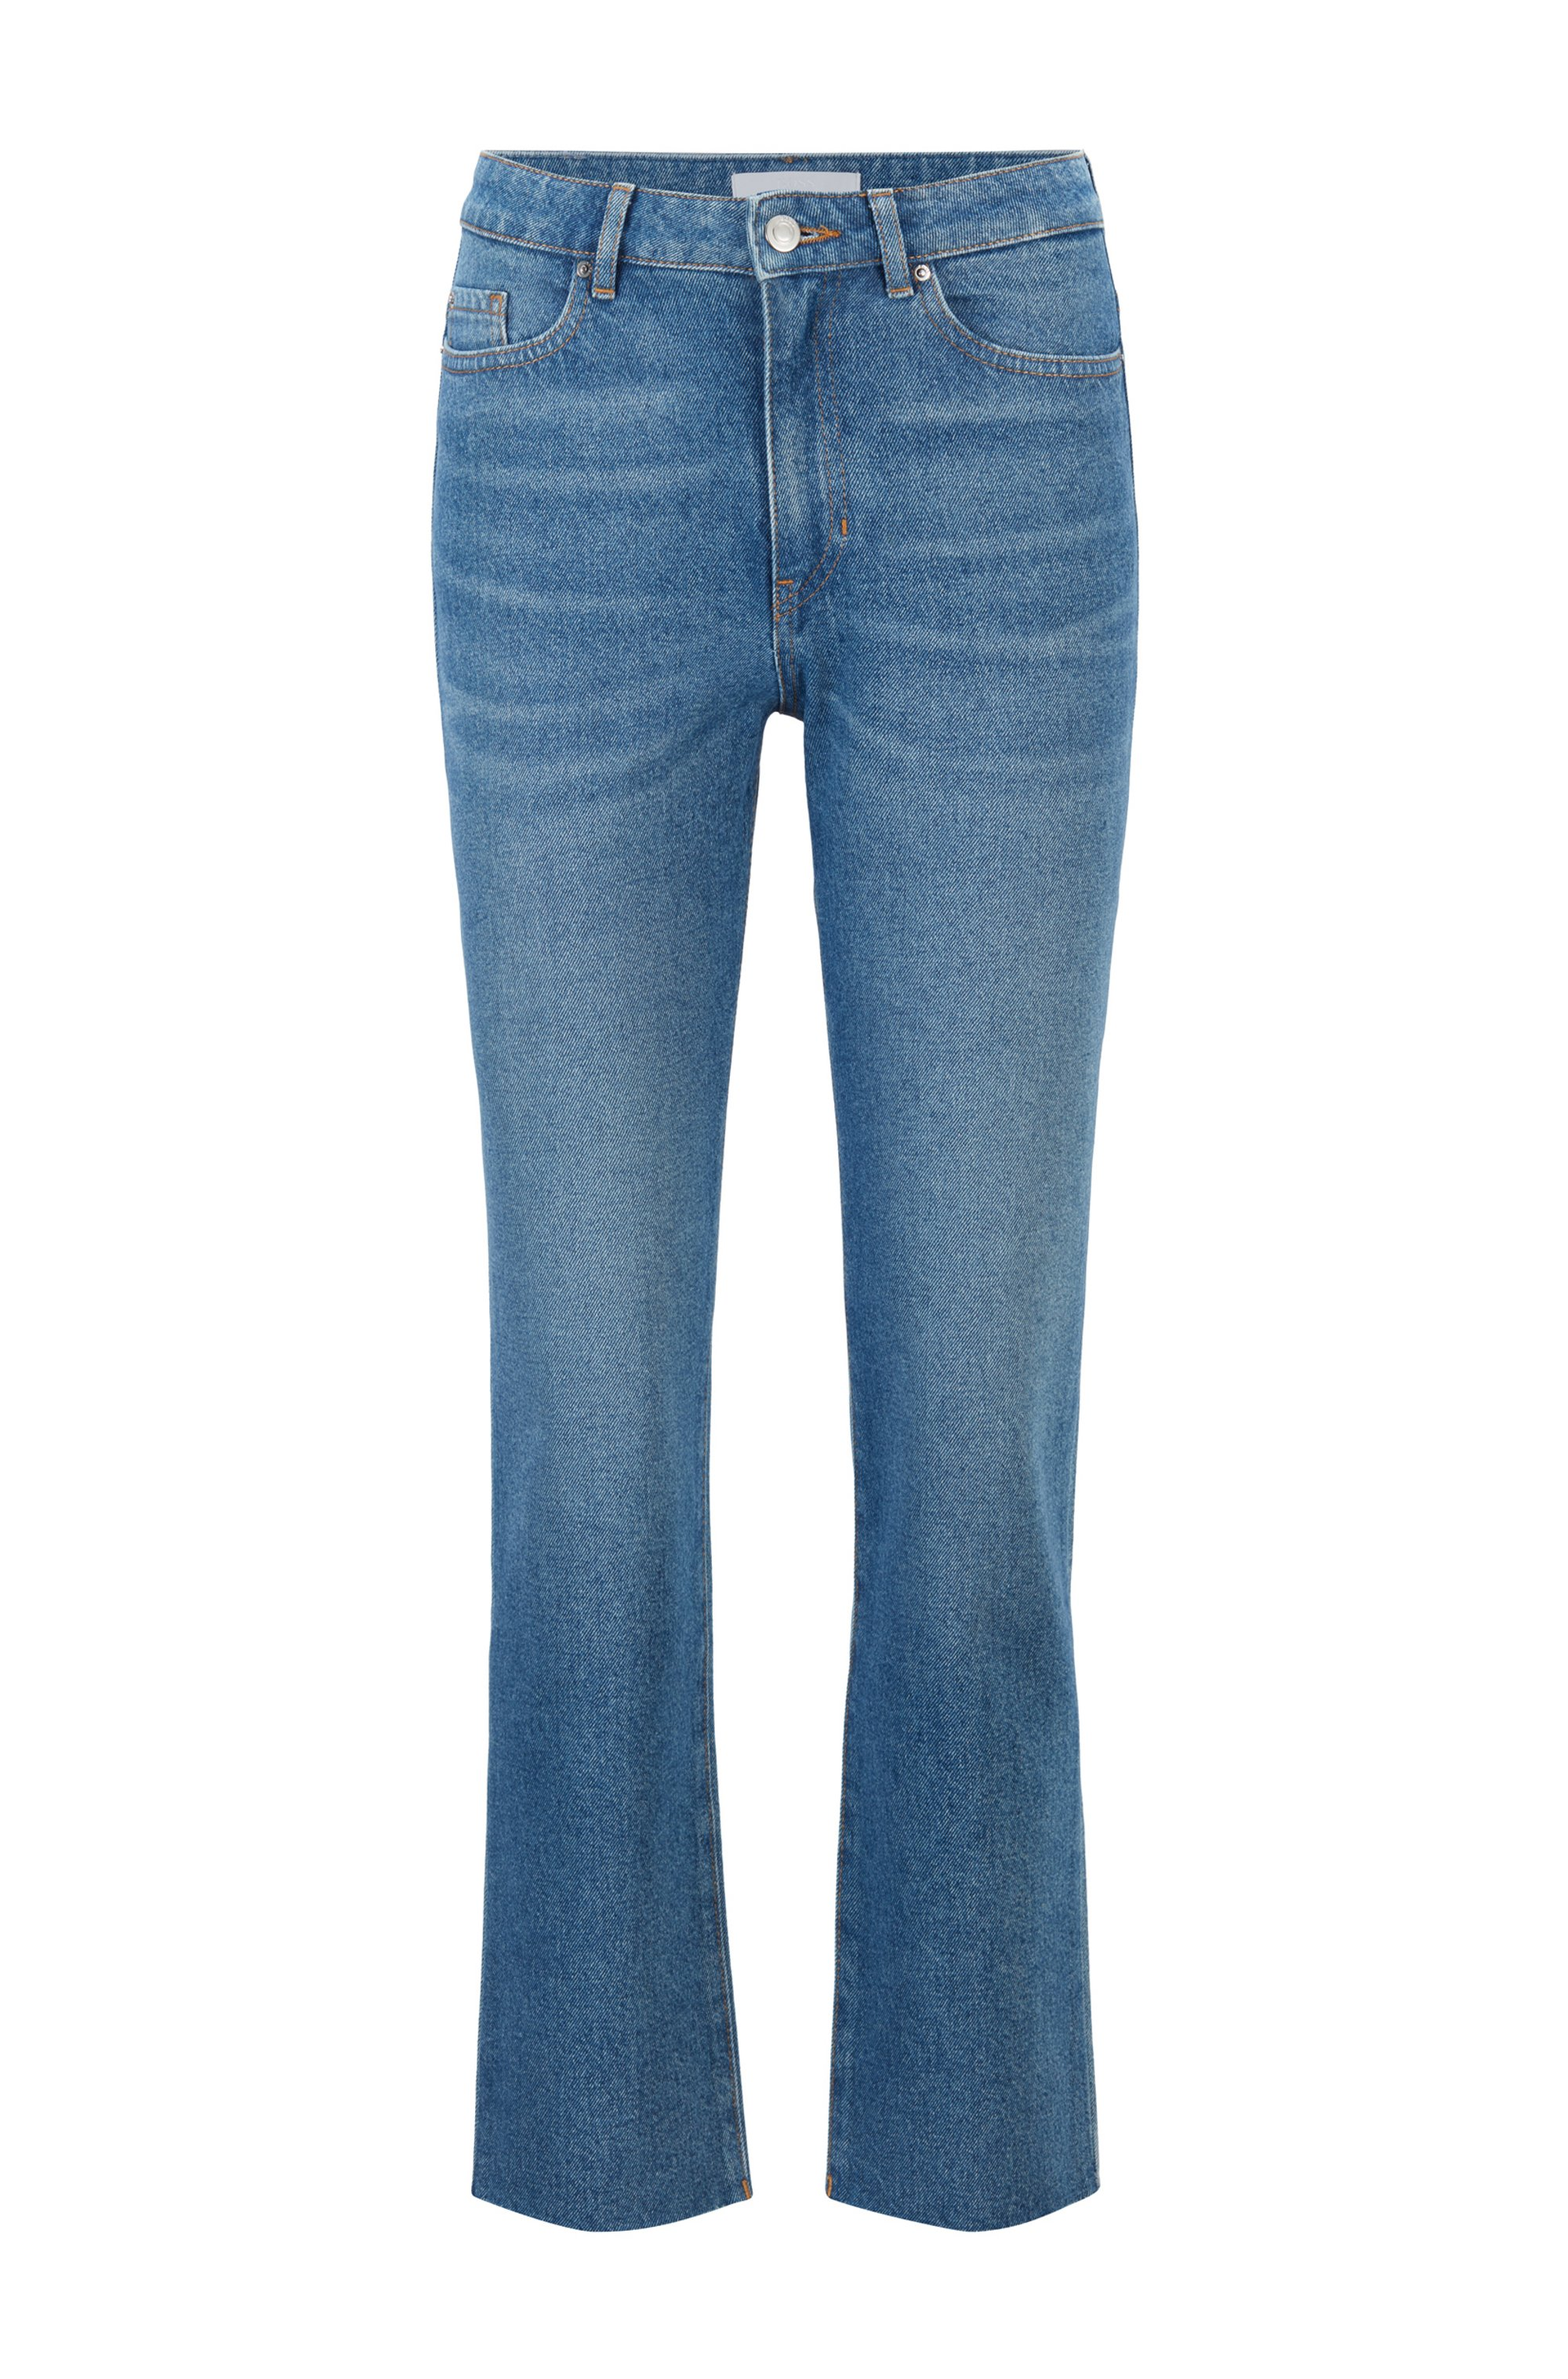 Regular-Fit Jeans aus zweifarbigem, blauem Denim in Cropped-Länge, Blau